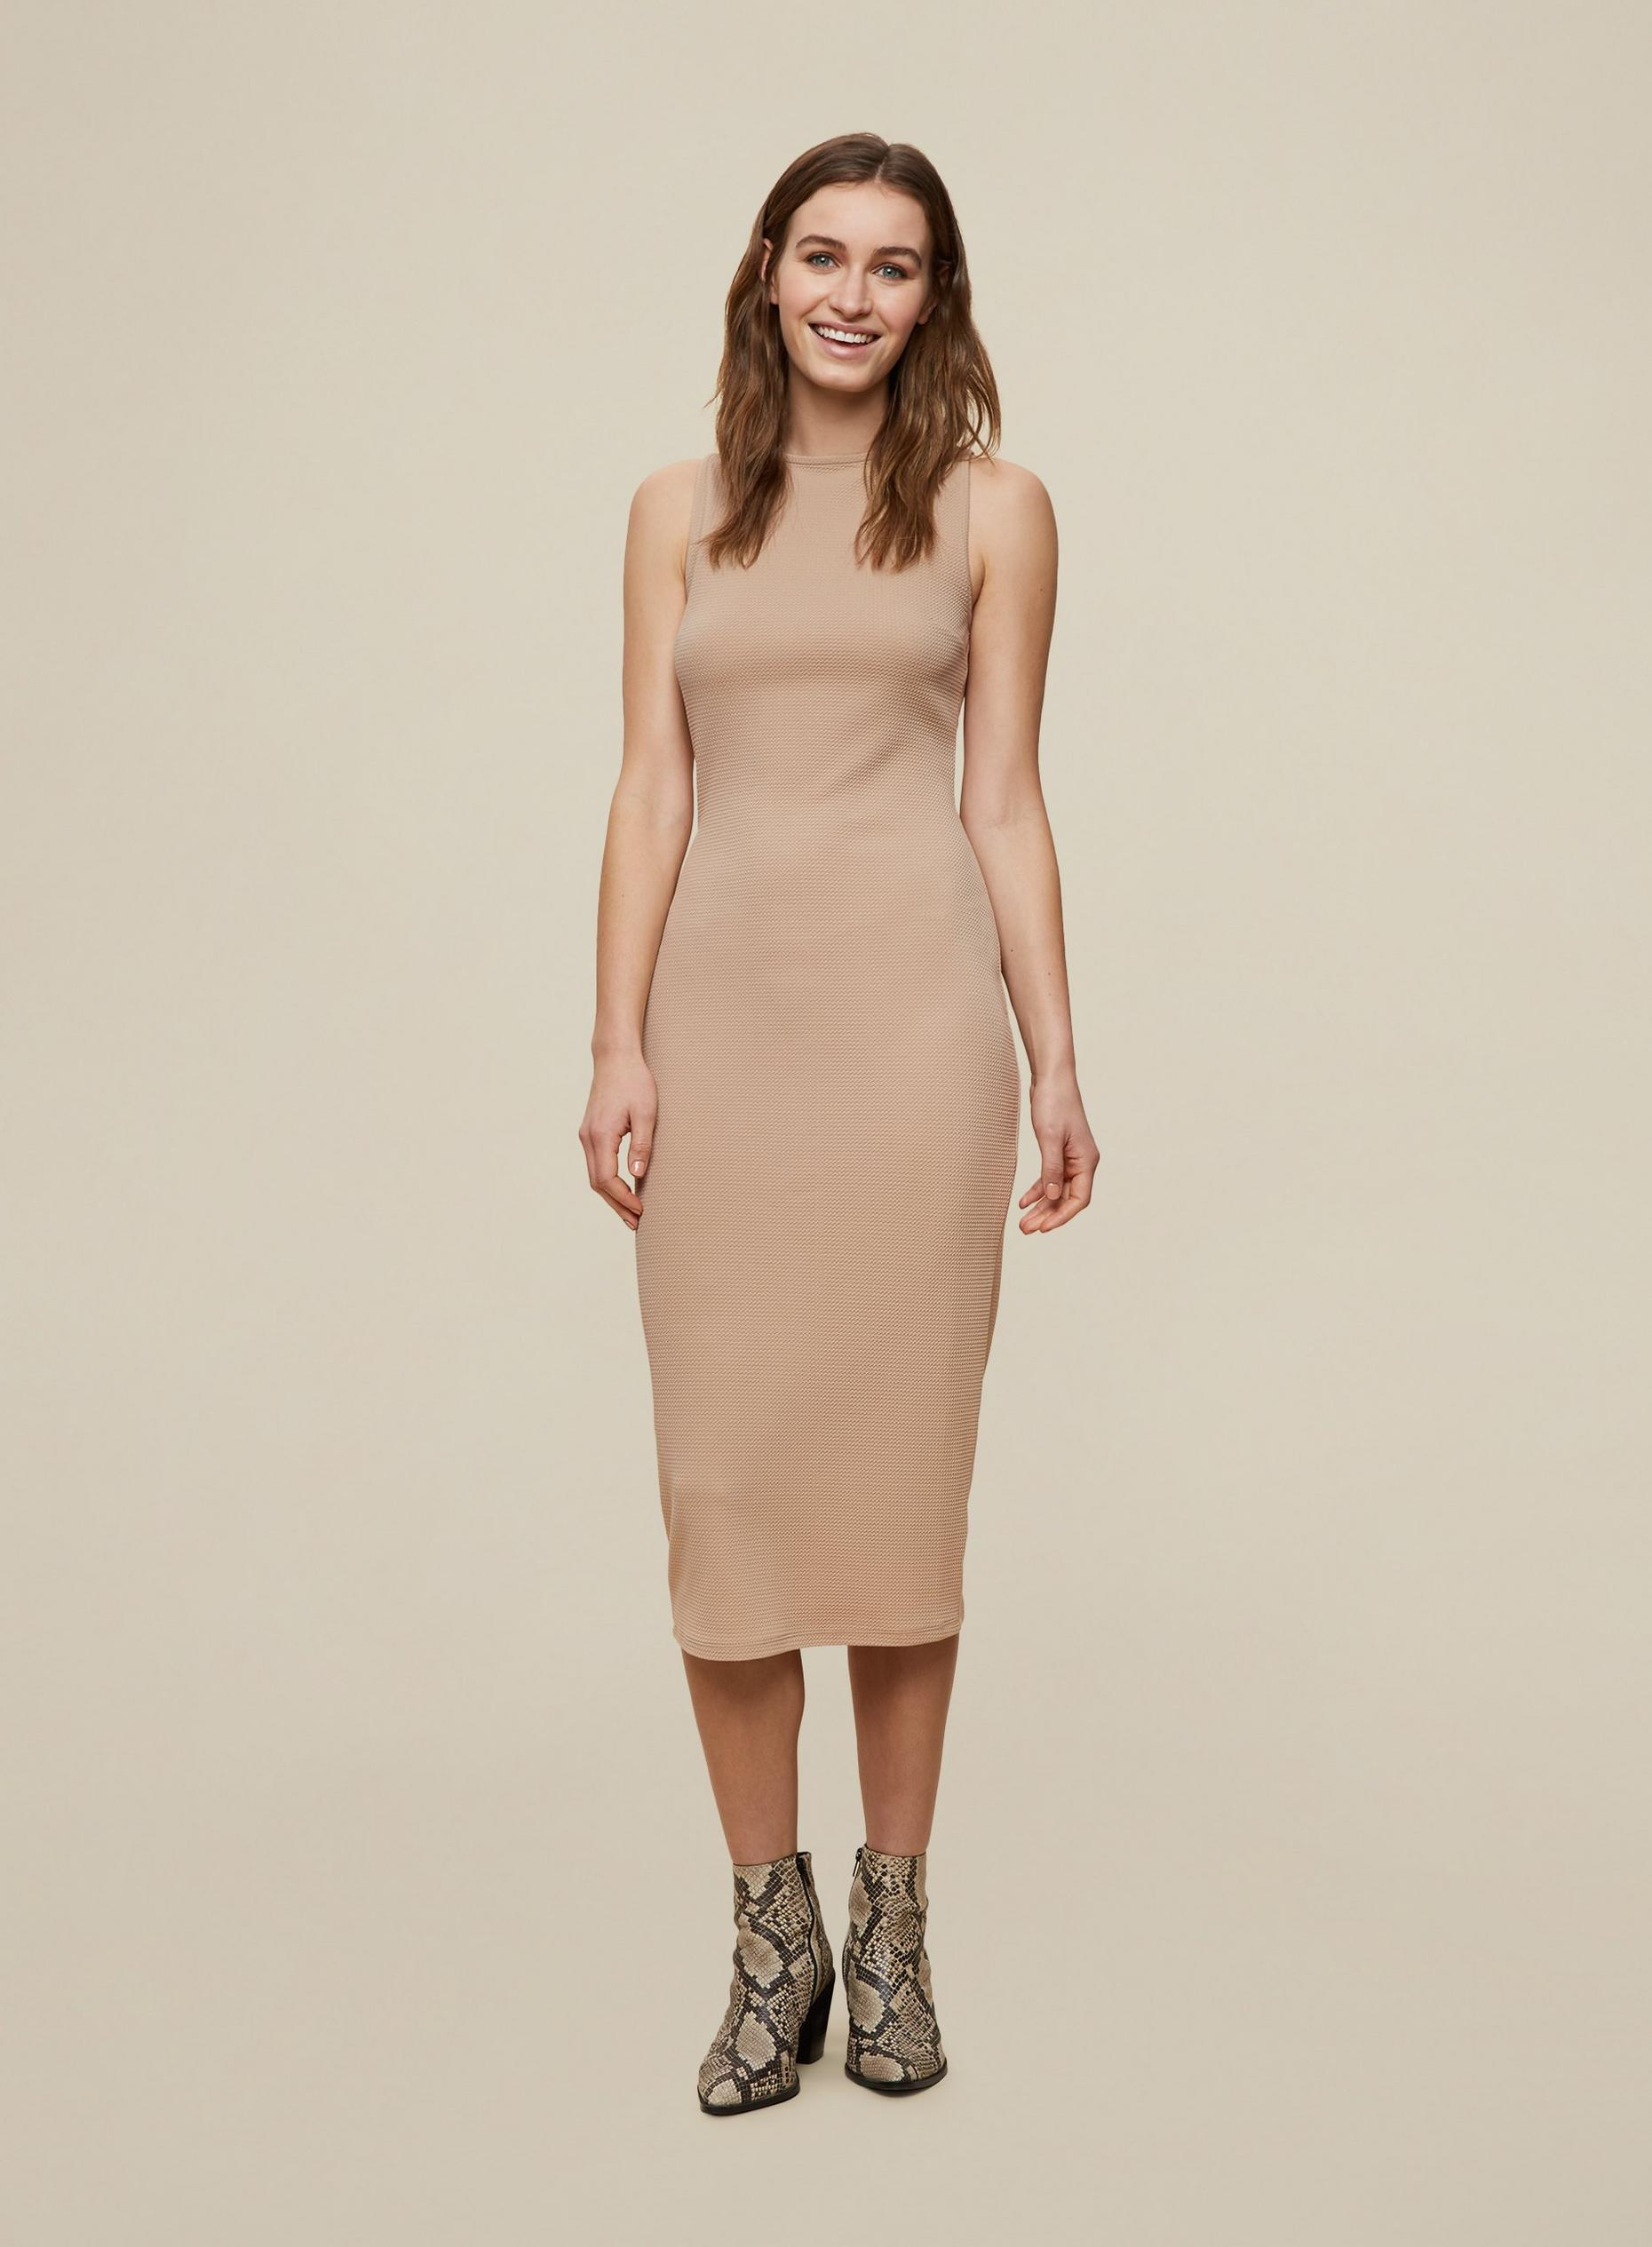 Camel Sleeveless Bodycon Dress